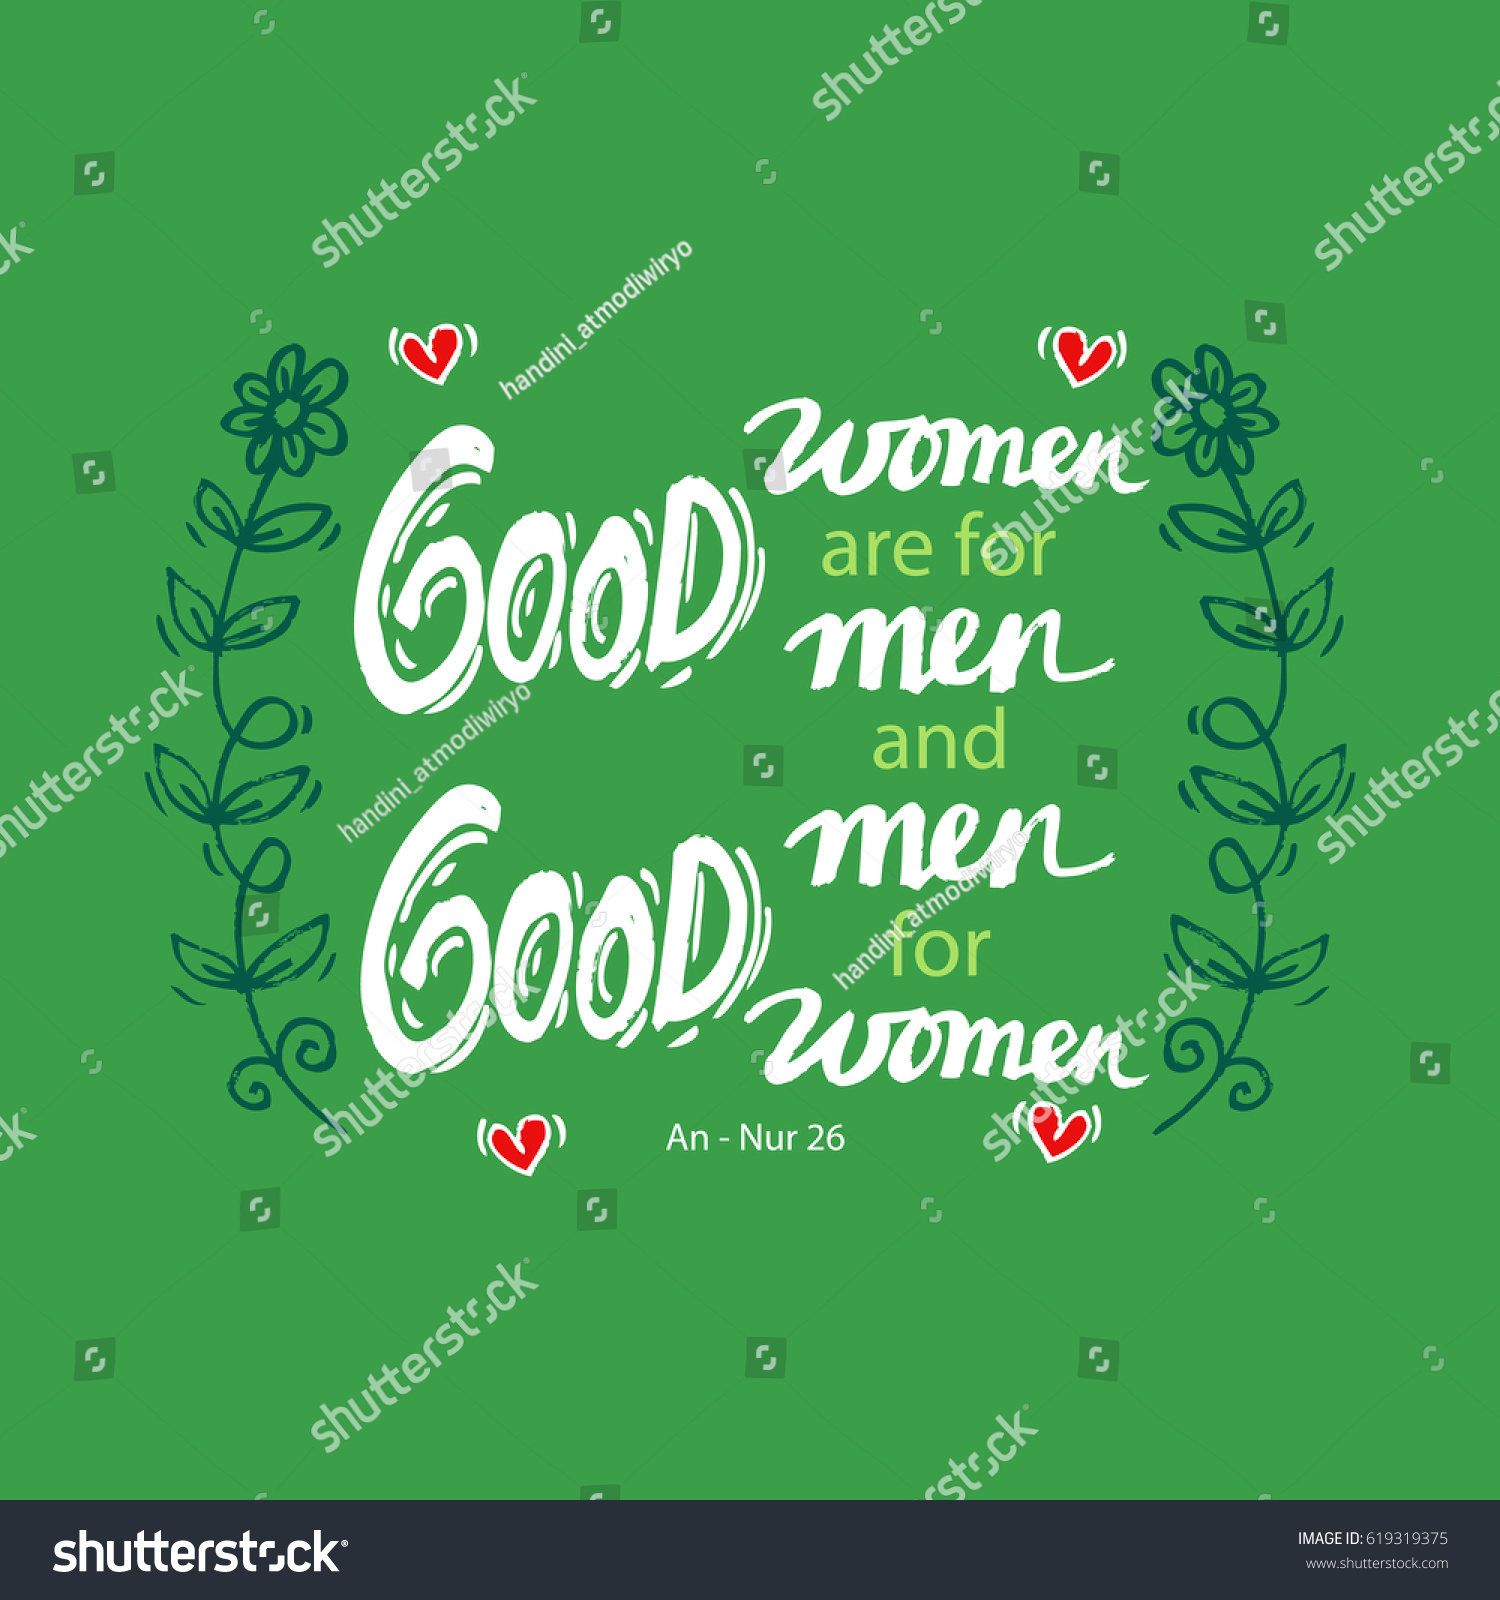 Quotes About Men And Women Good Women Good Men Good Men Stock Vector 619319375  Shutterstock